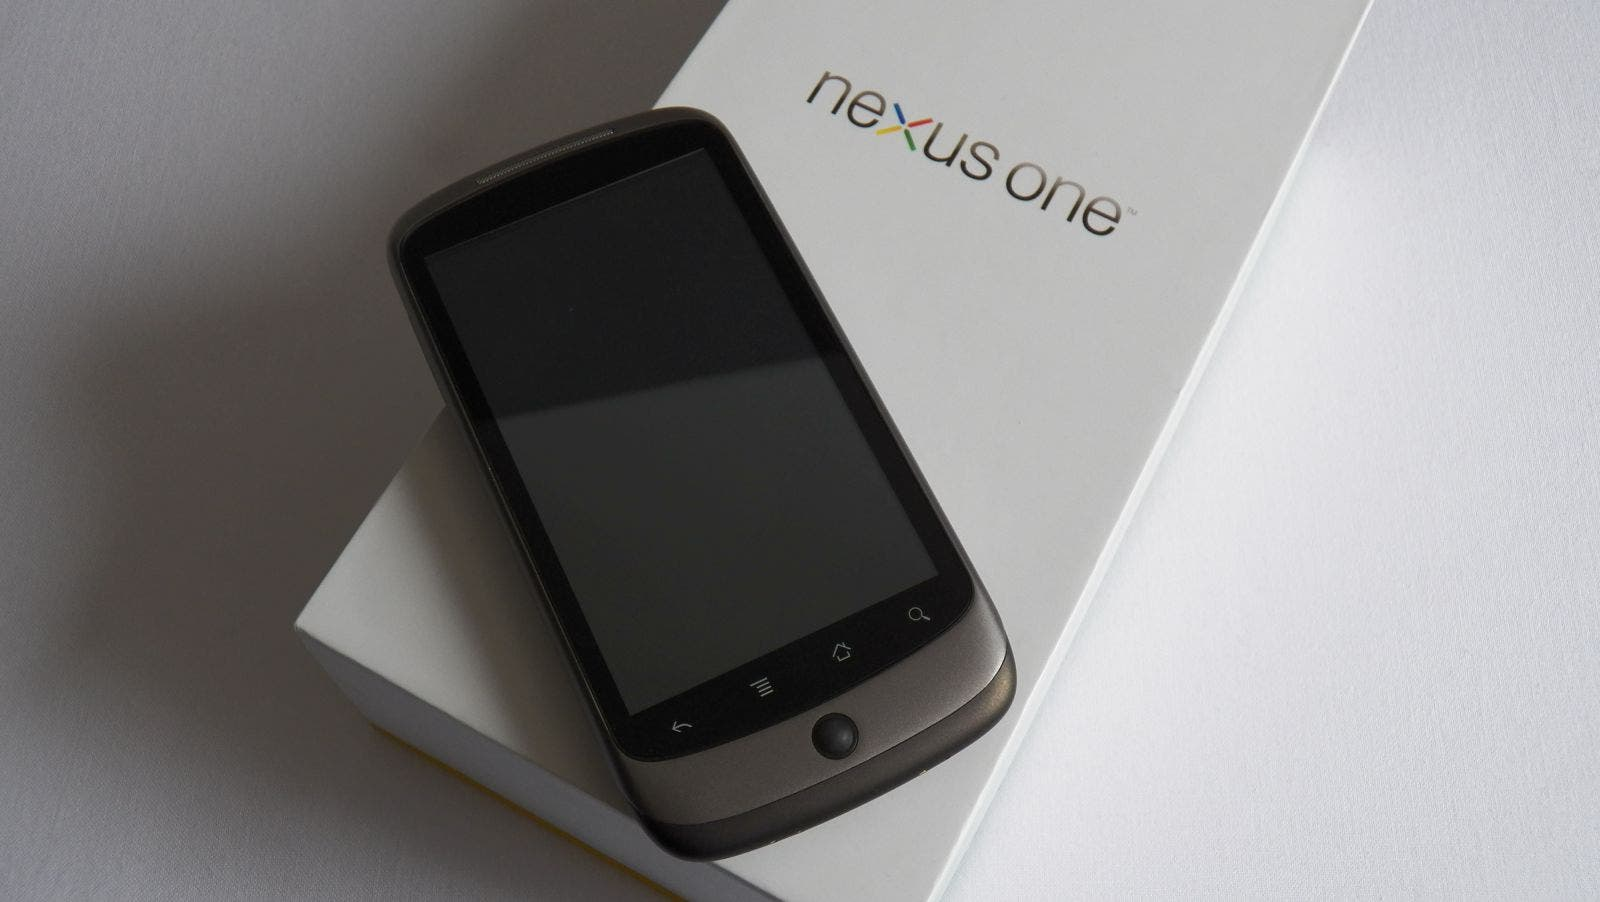 Das Google Nexus One